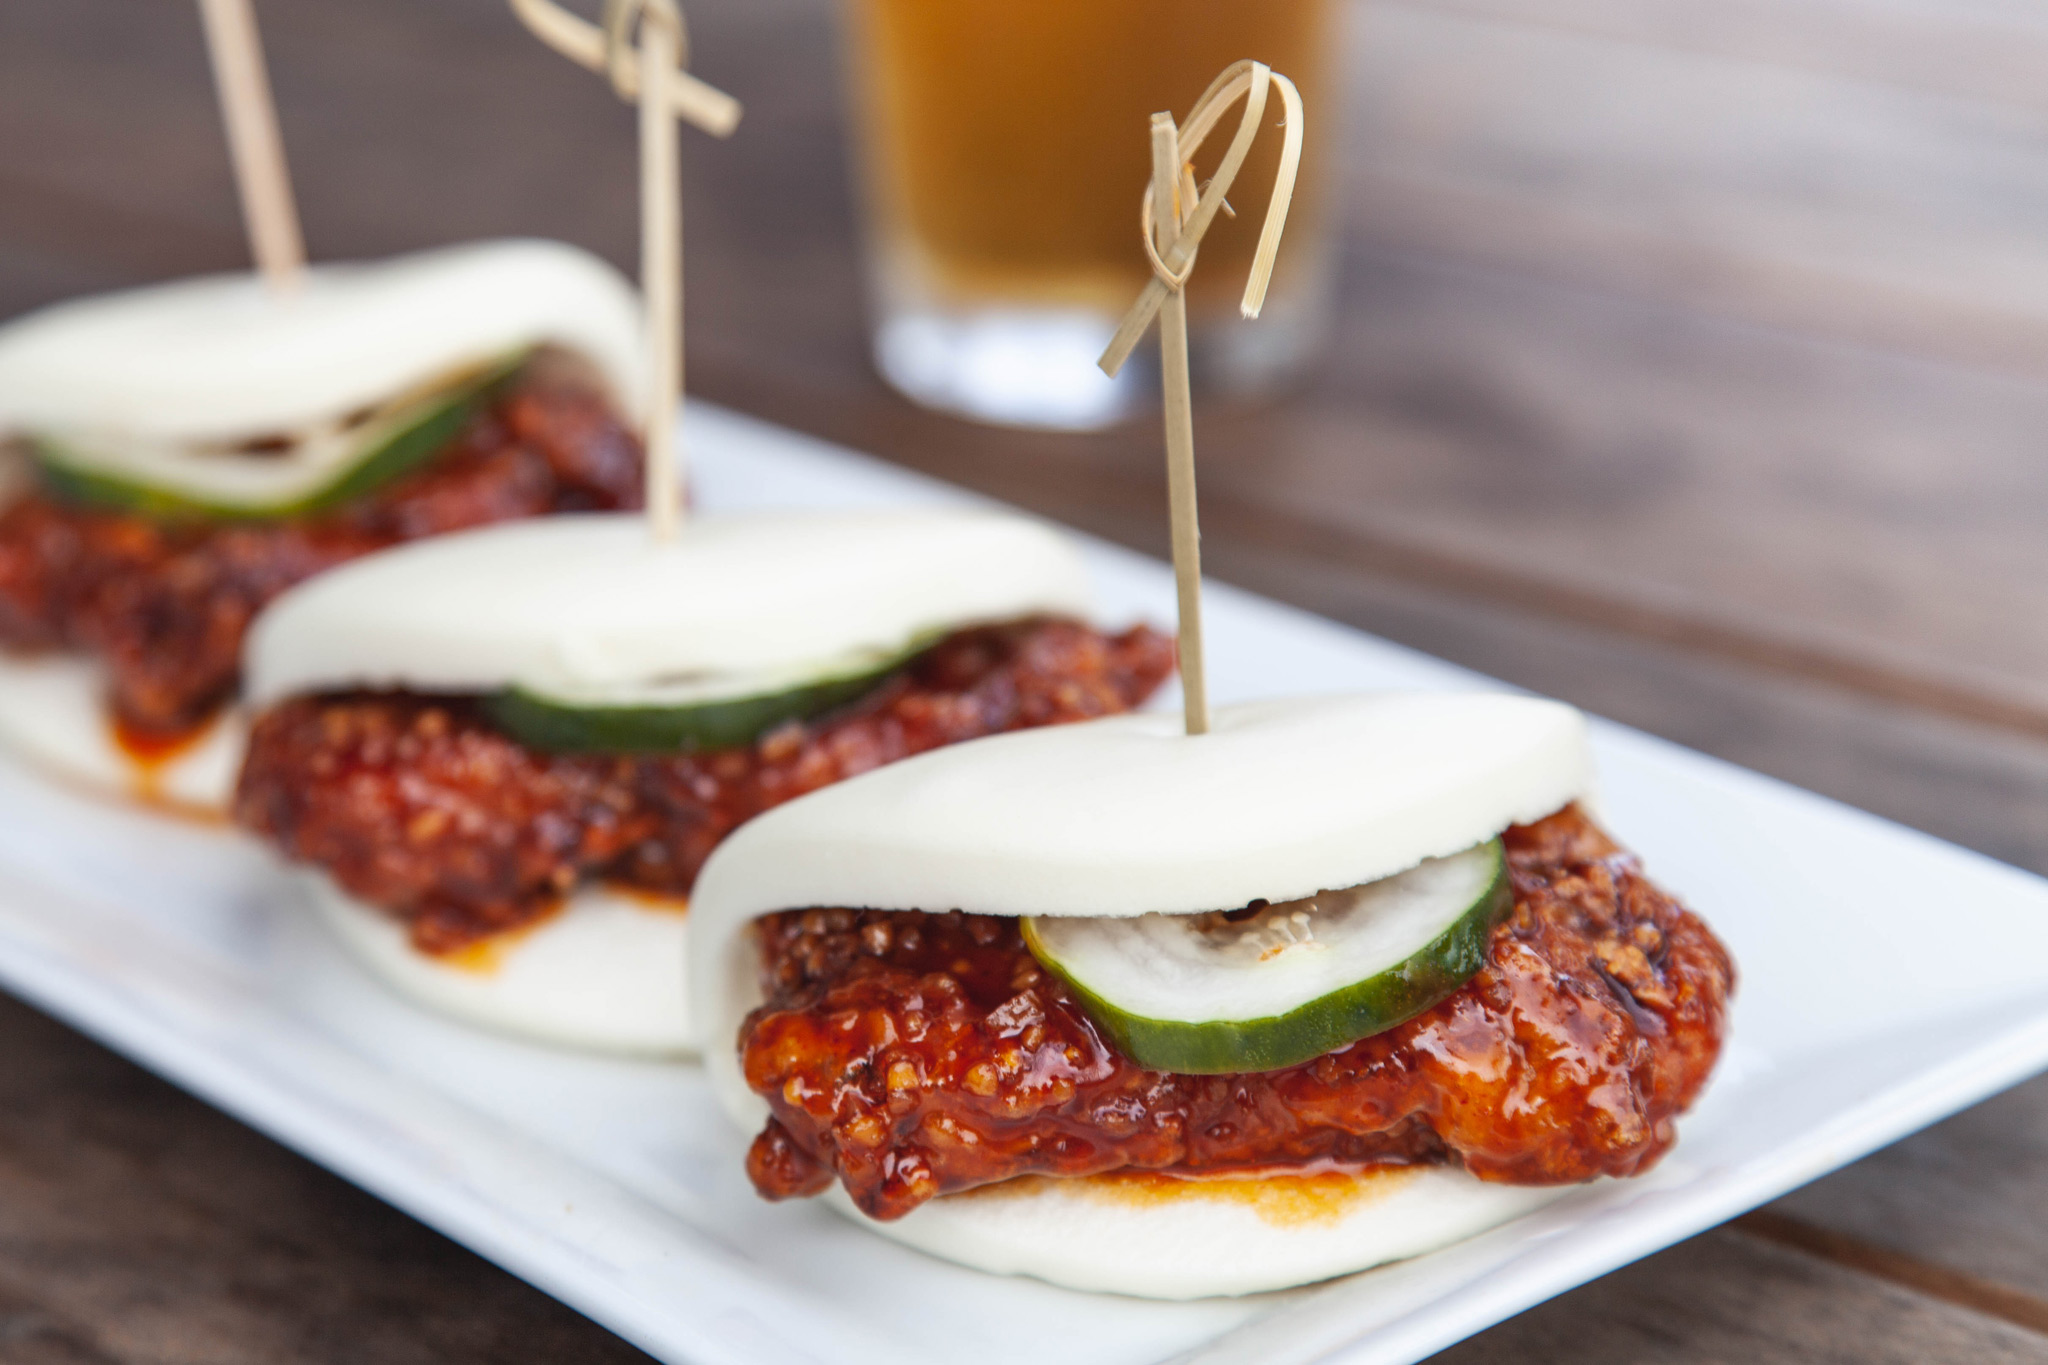 Seoul Hot Chicken Bao